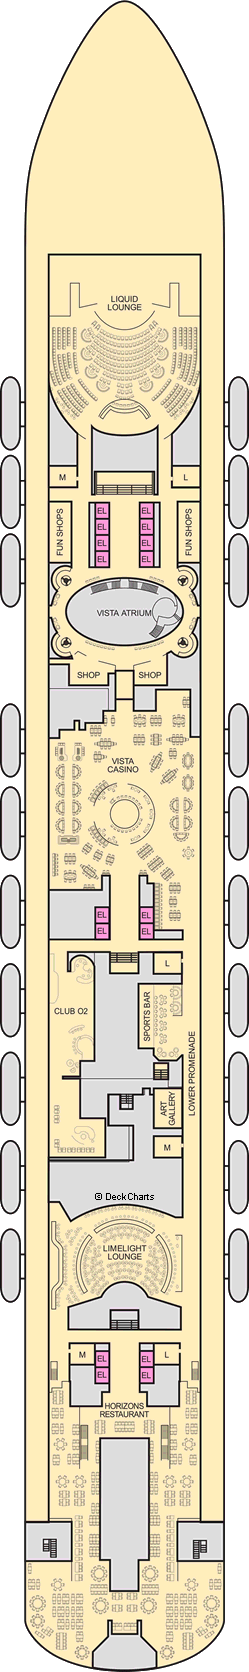 Carnival Vista Deck Plans Ship Layout Staterooms Cruise Critic